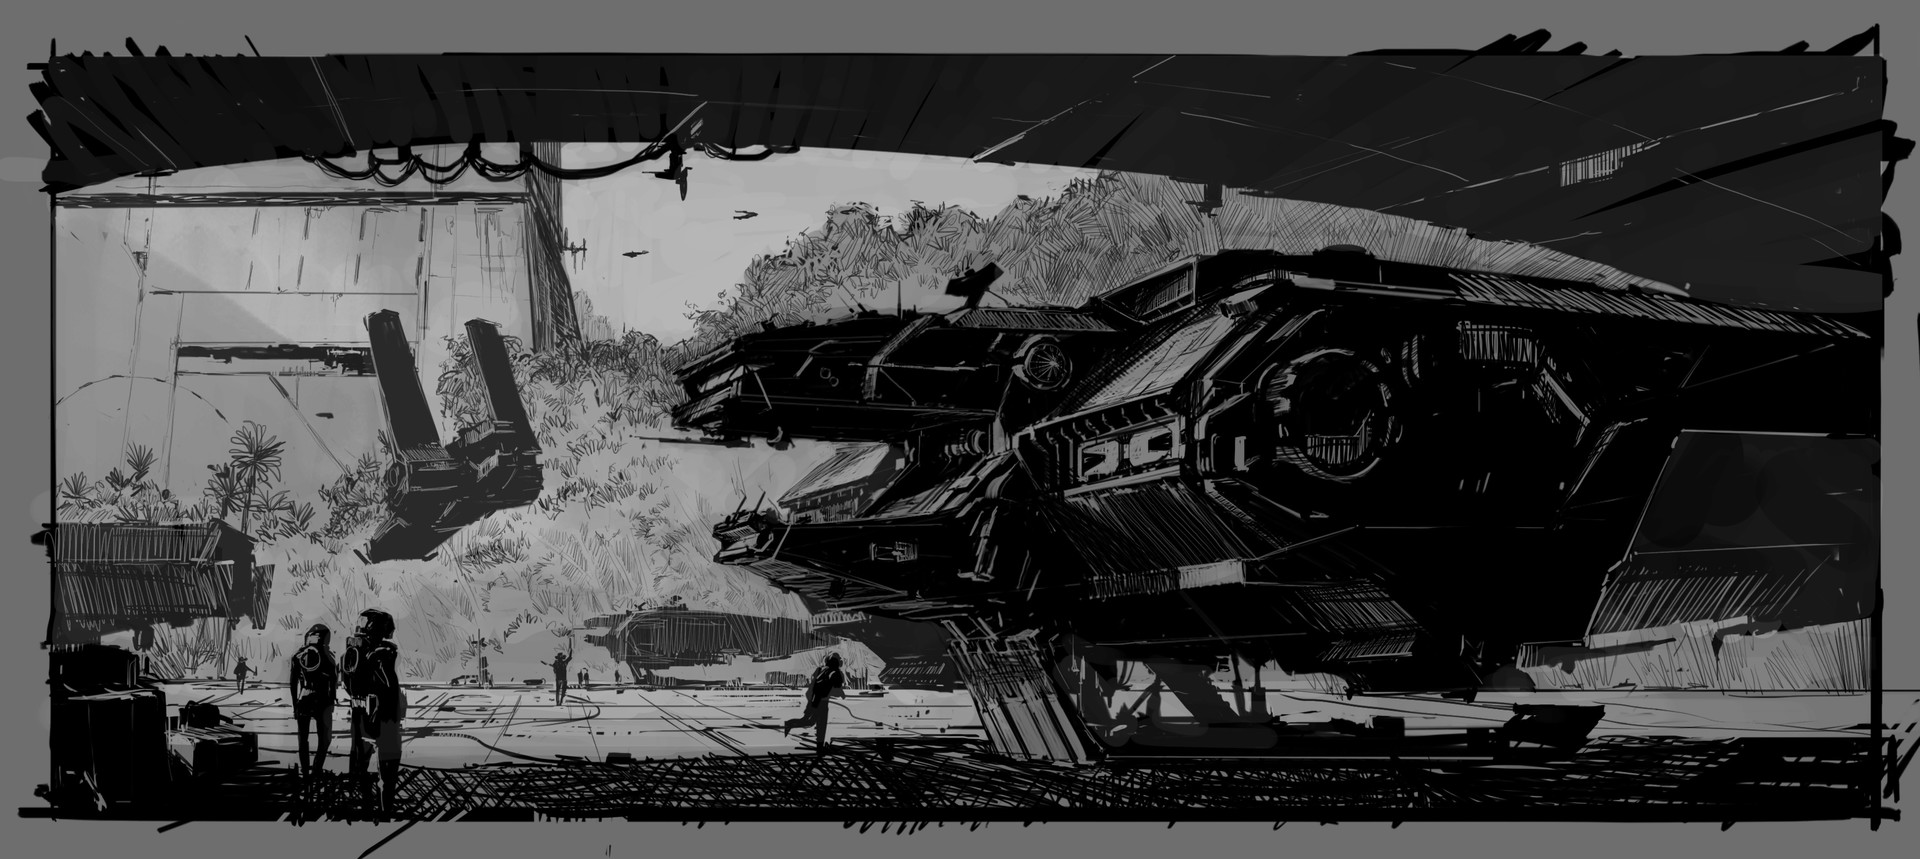 Martin deschambault black white hangar spaceship c